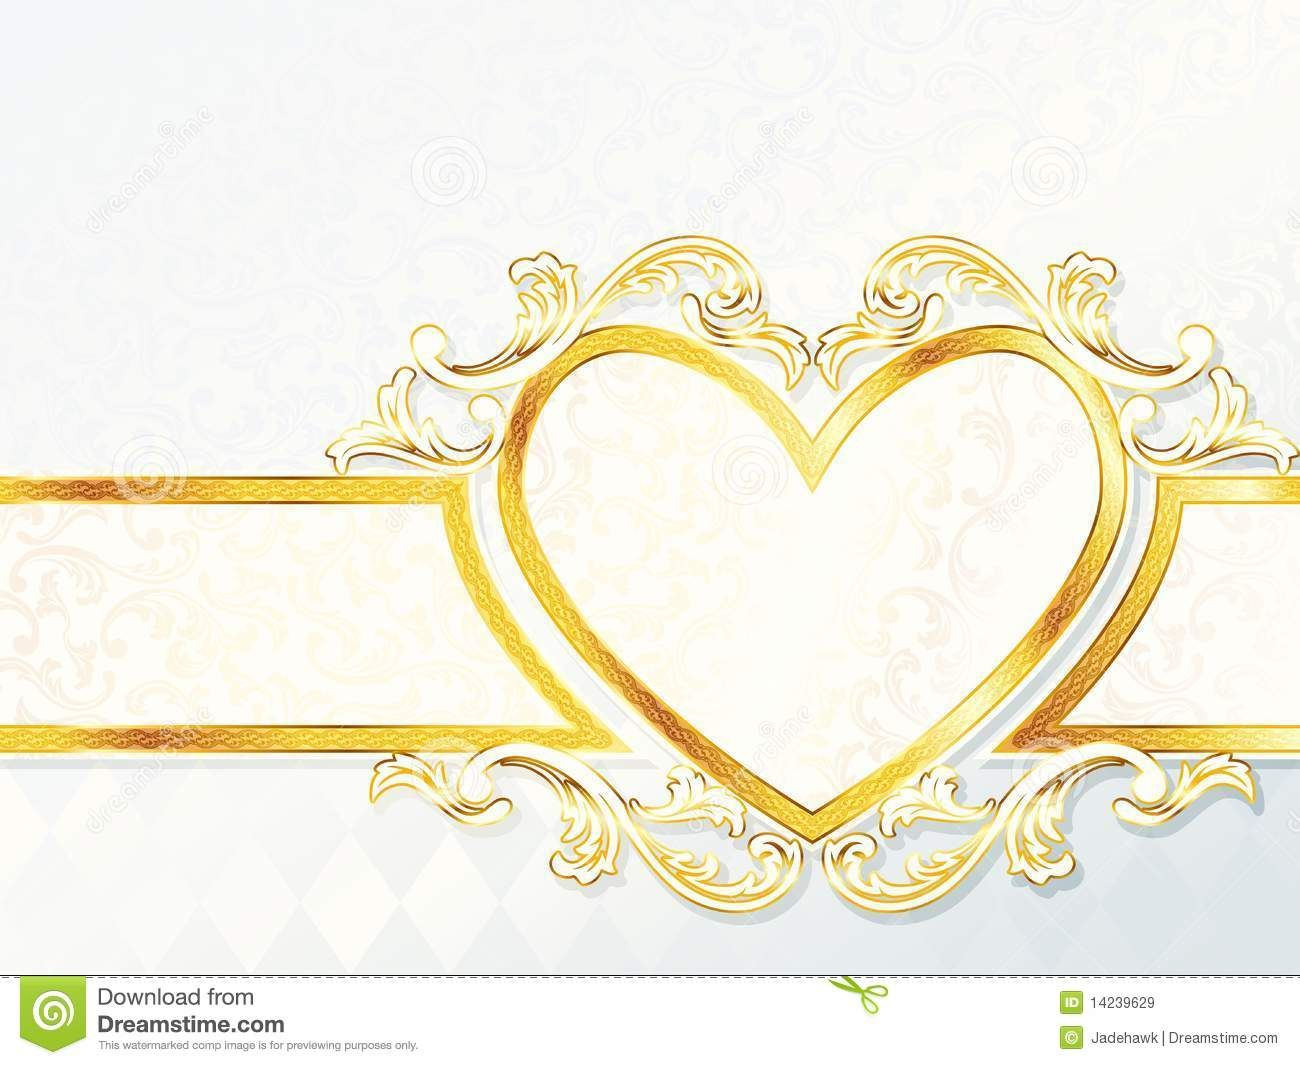 horizontal rococo wedding banner with heart emblem stock regarding wedding banner design templates in 2020 wedding banner design wedding banner banner template design pinterest